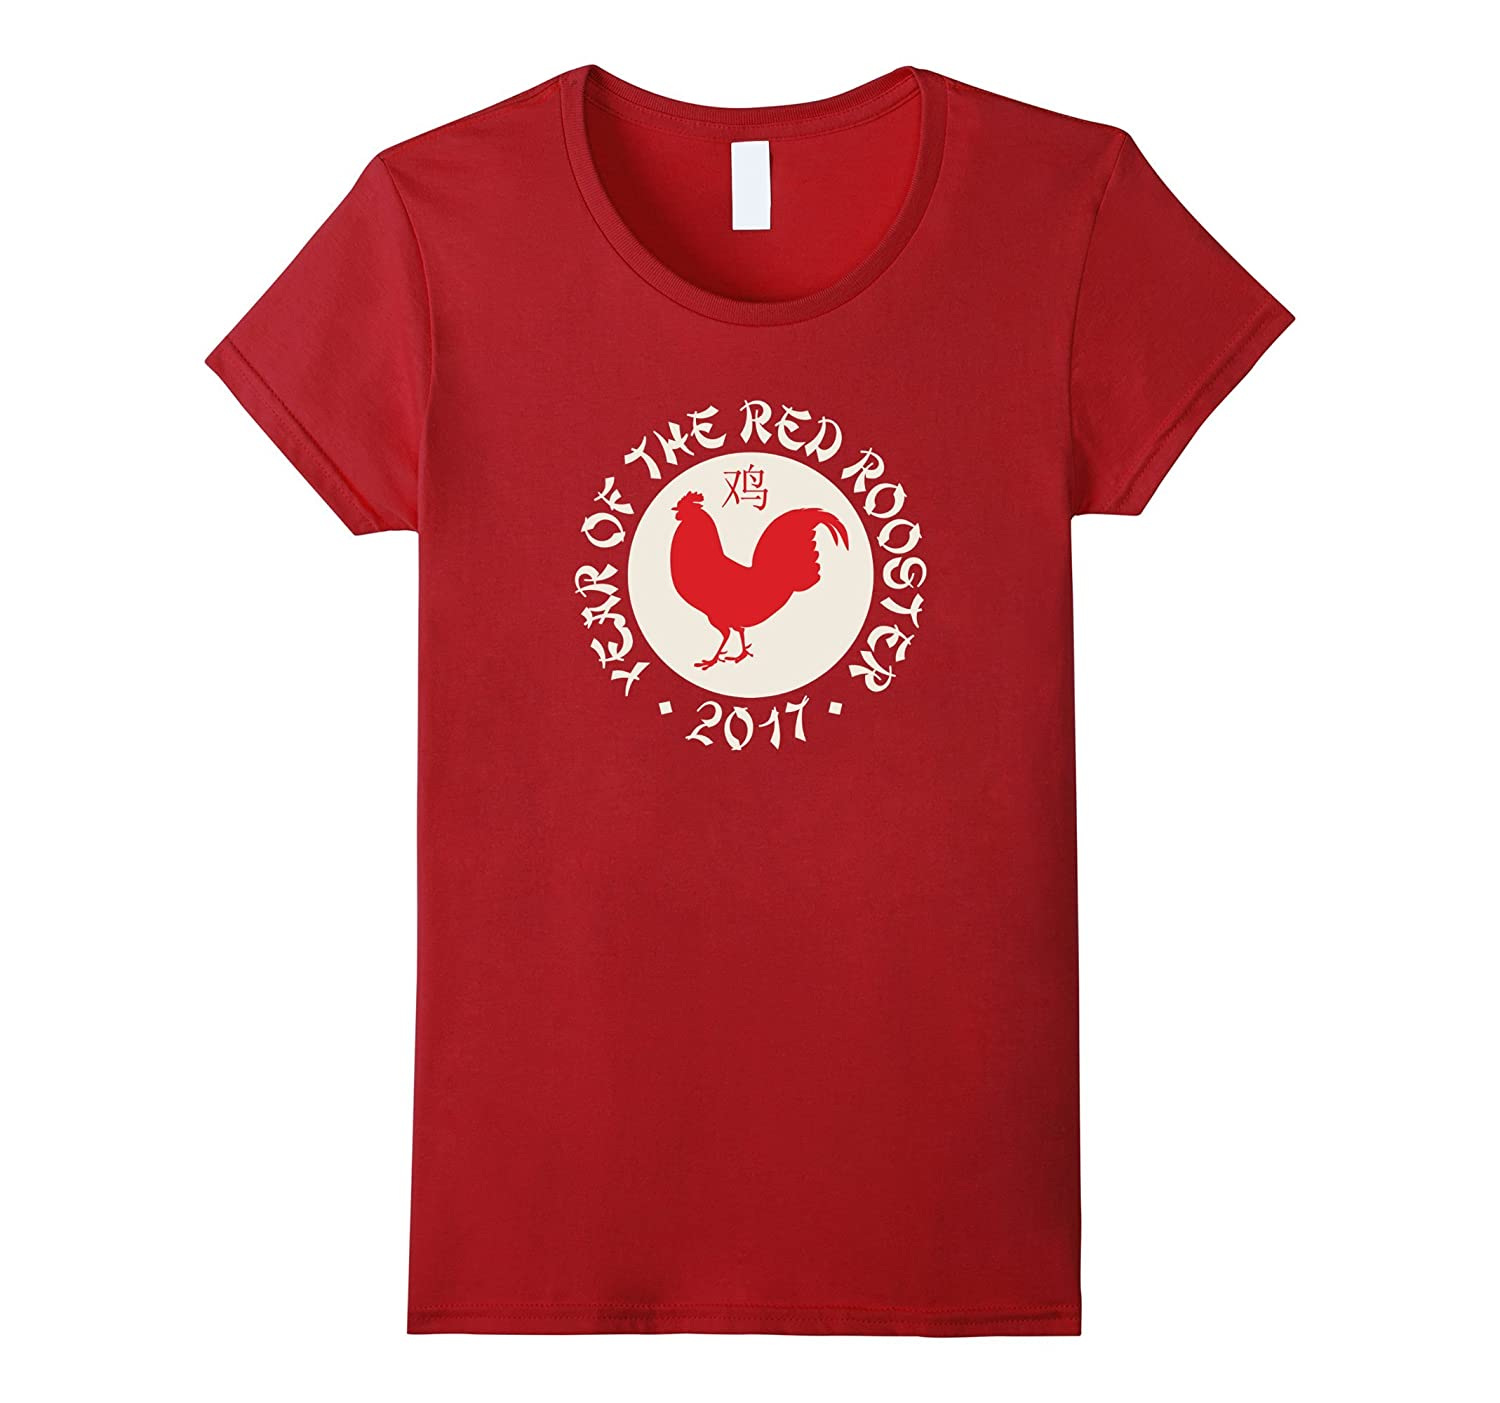 2017 Year Of The Red Rooster Chinese New Year T-Shirt